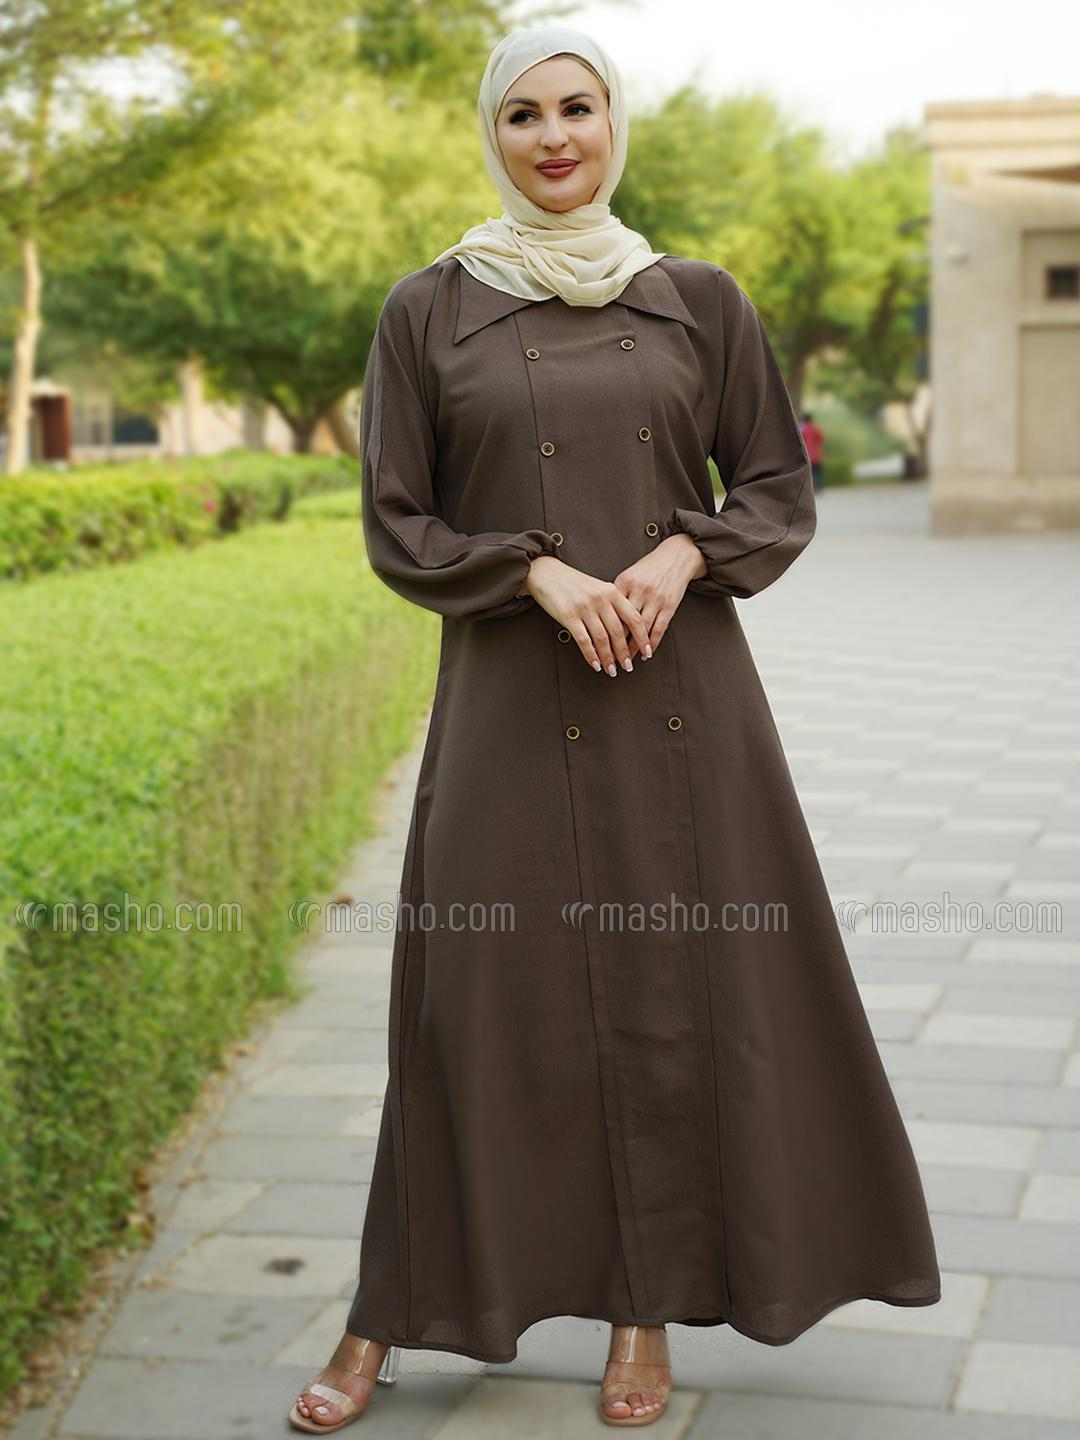 Korean Masha Crepe Simple Free Size Abaya With Show Button On Front And Sleeve Bottom With Elastic I